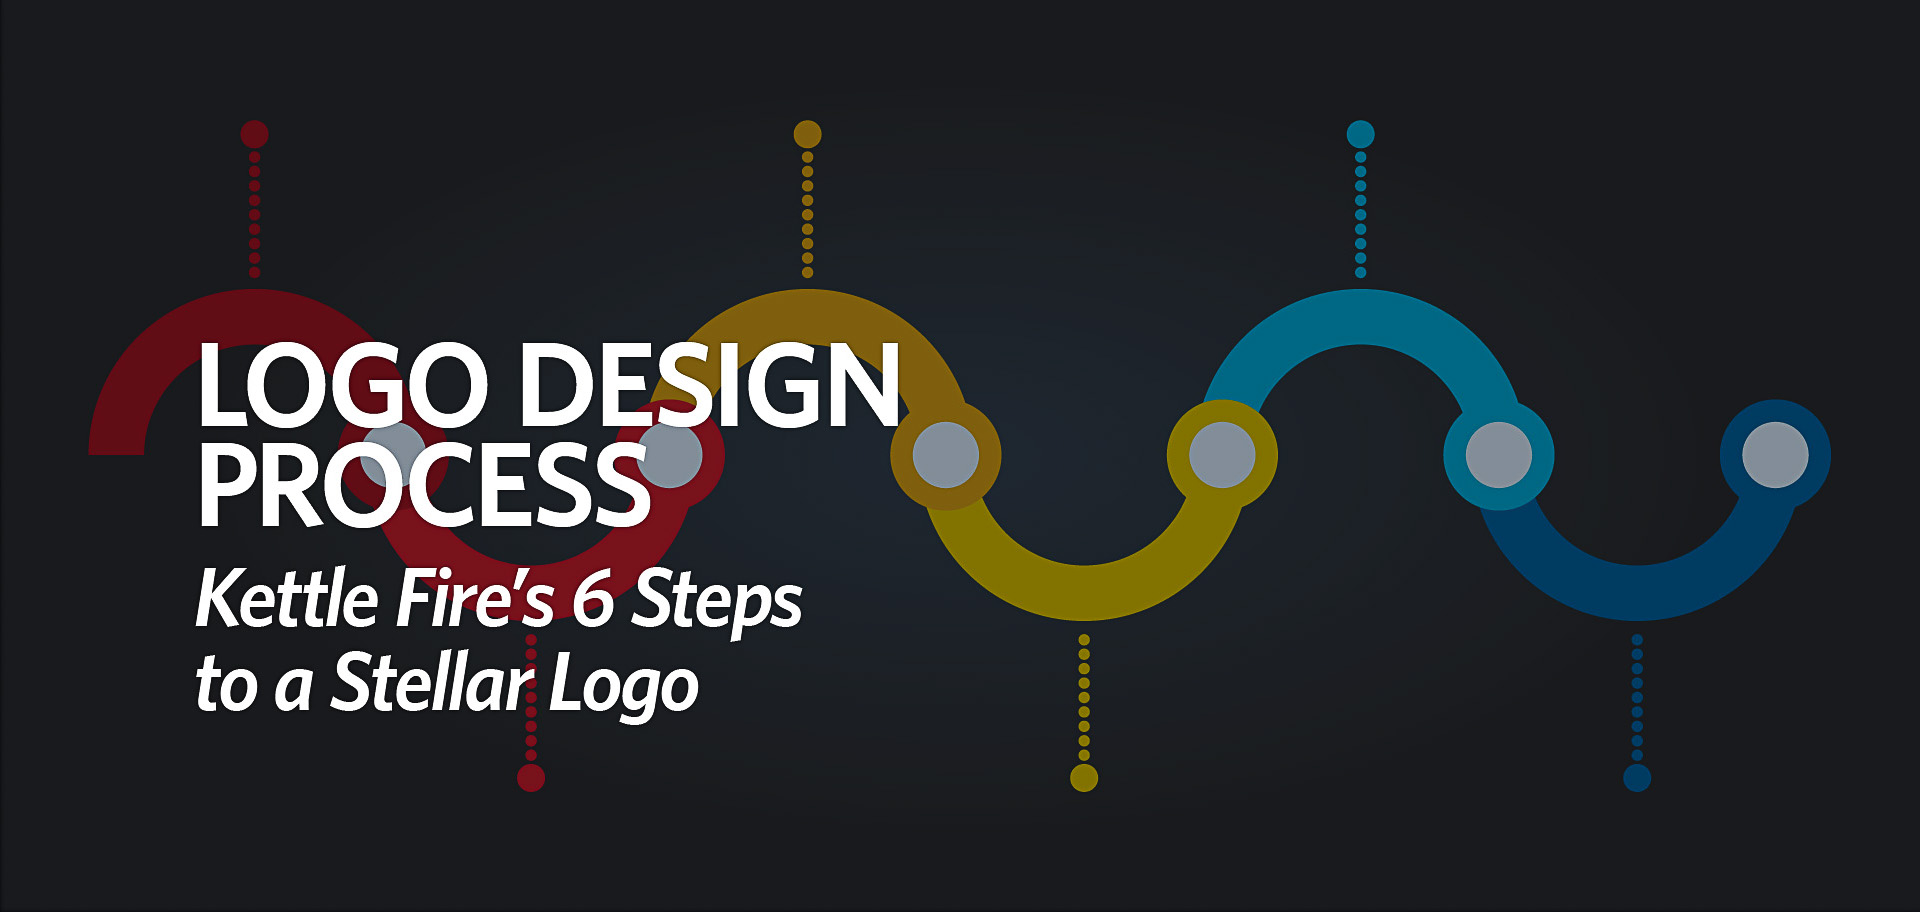 Logo design process, Kettle Fire Creative blog, steps to make a logo logo design Logo Design Process: Kettle Fire's 6 Steps to a Stellar Logo fi